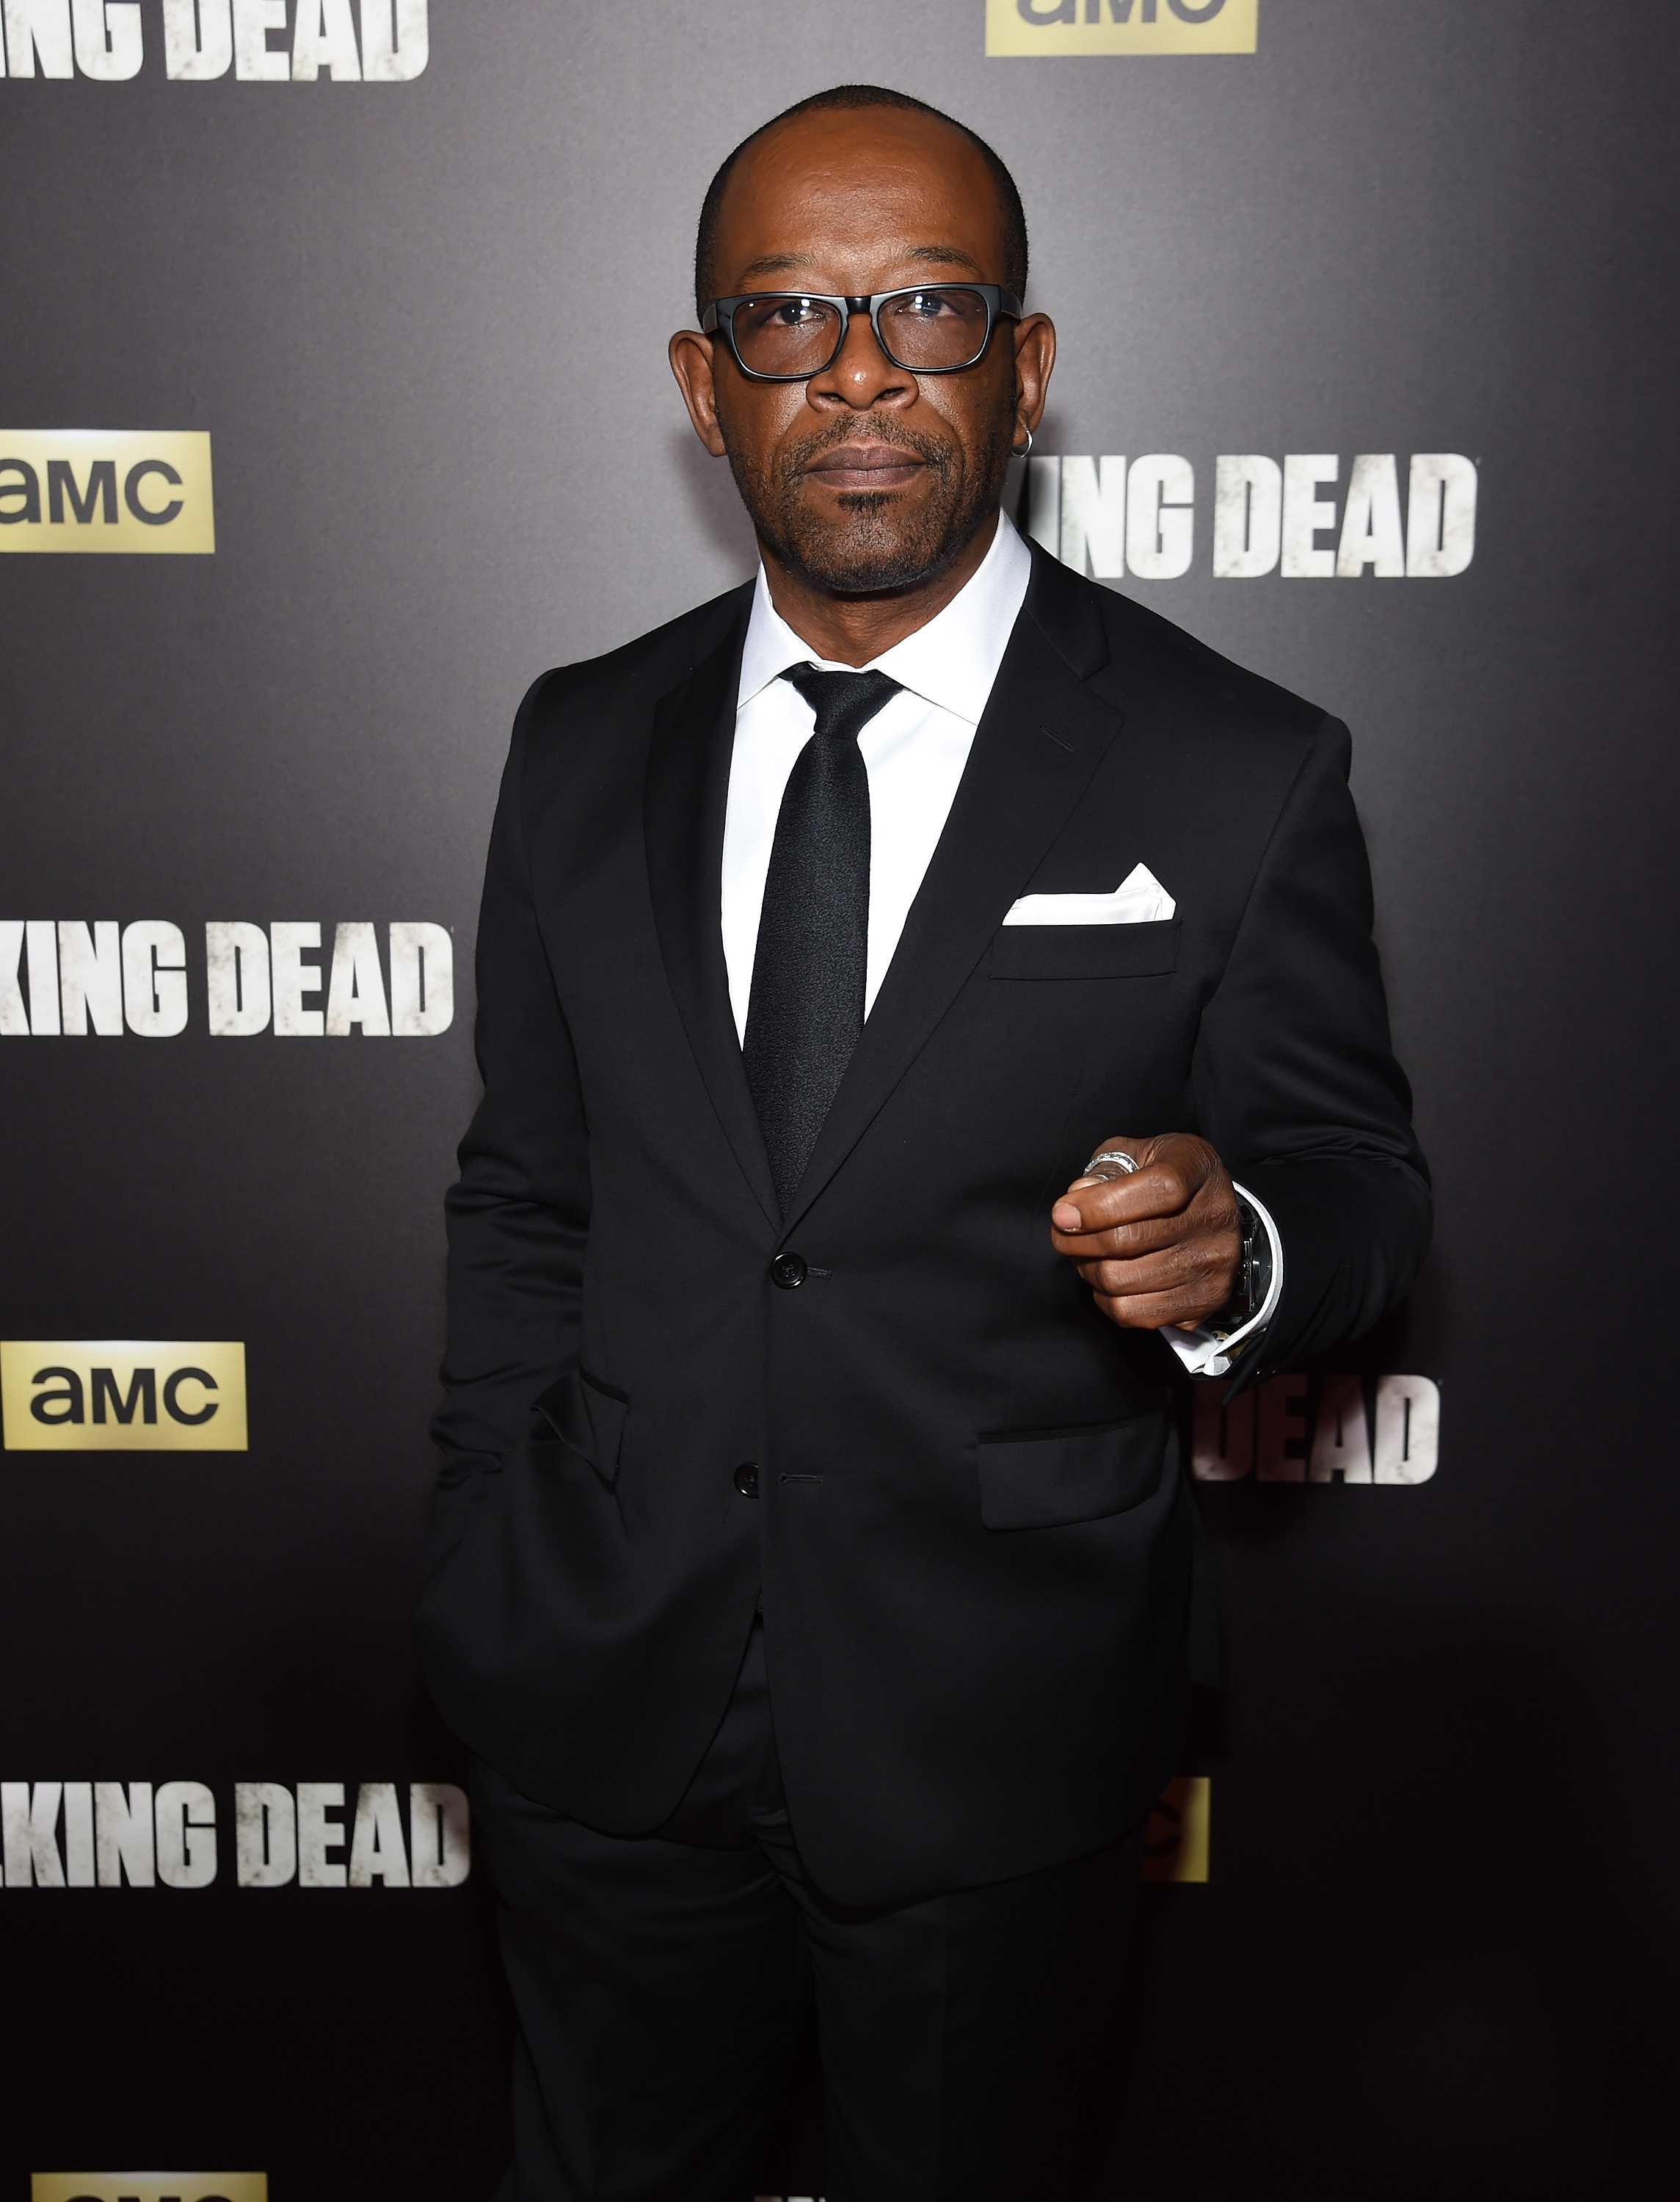 Walking Dead Season 6 Star Lennie James Cast In New Film